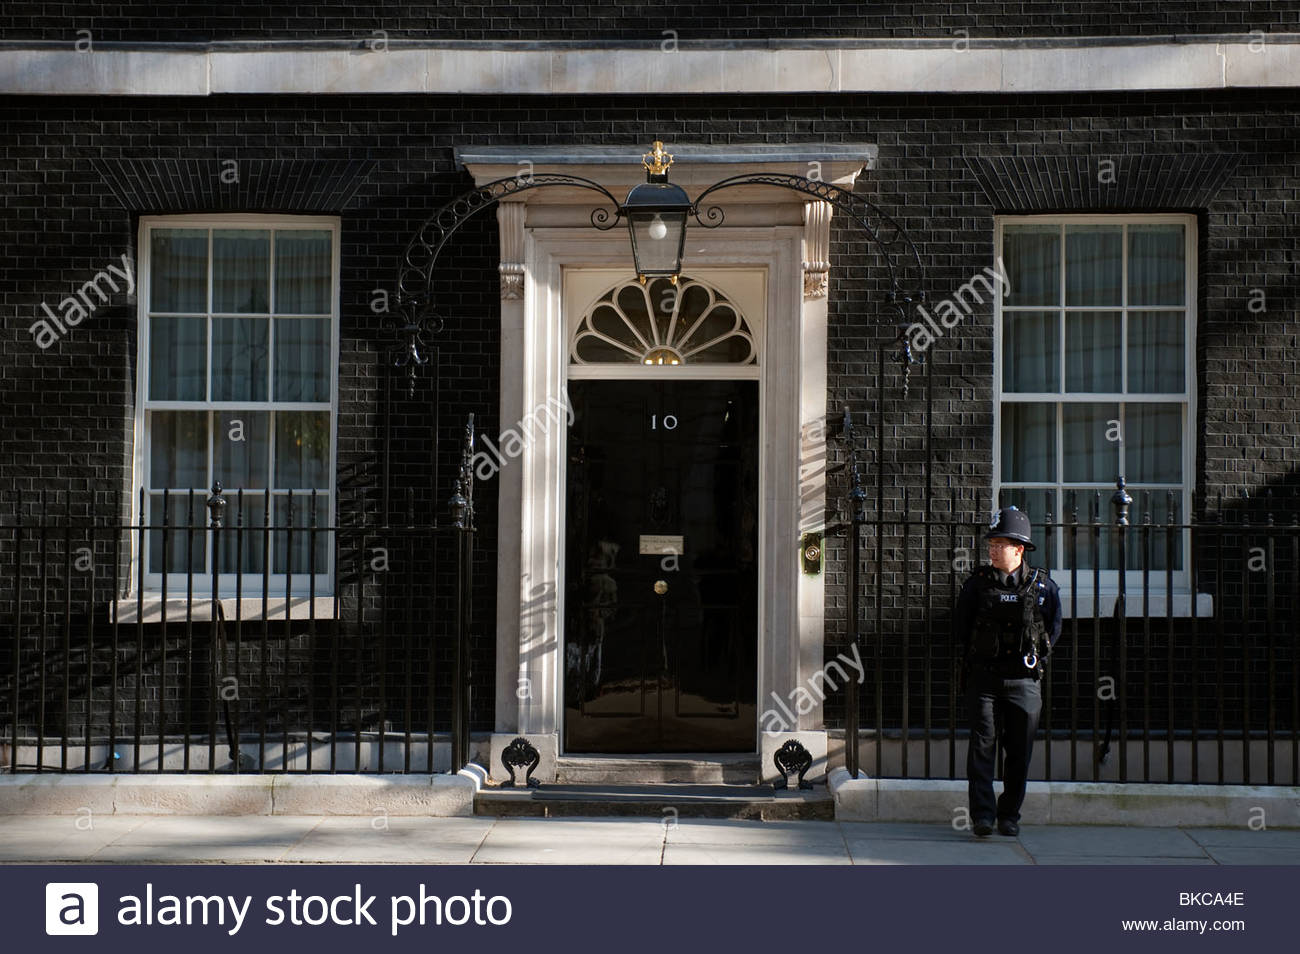 No 10 Downing Street London, No 10 Downing Street in London, England. Residence of the Prime ...